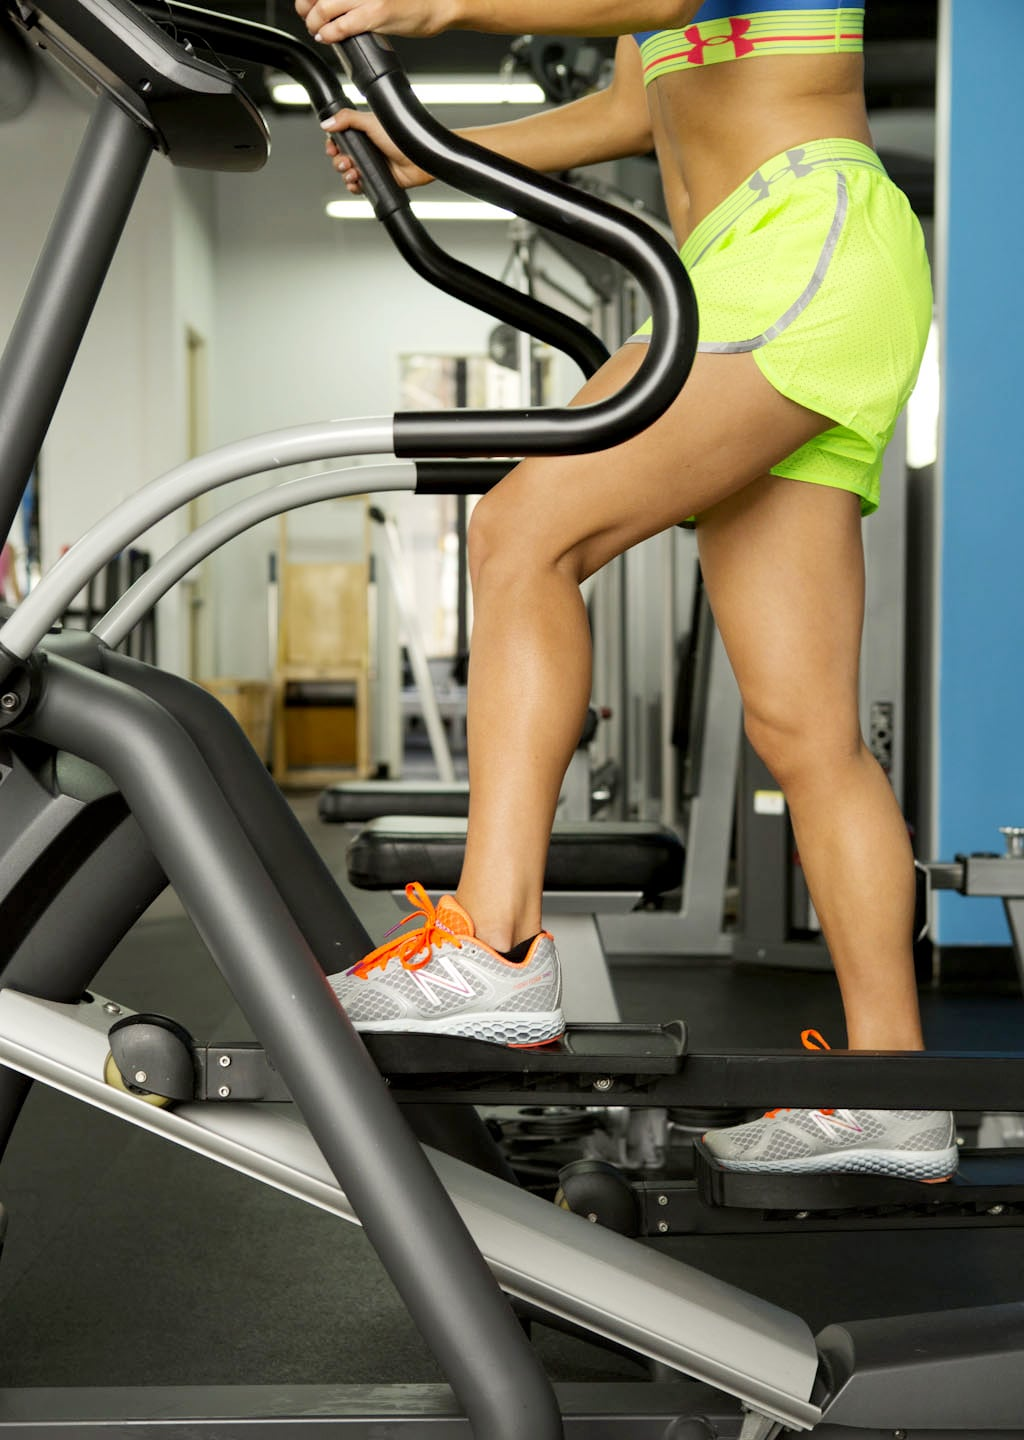 Cardio Workout Rowing Elliptical And Running Popsugar Fitness Supersets More Circuit Workouts Gym